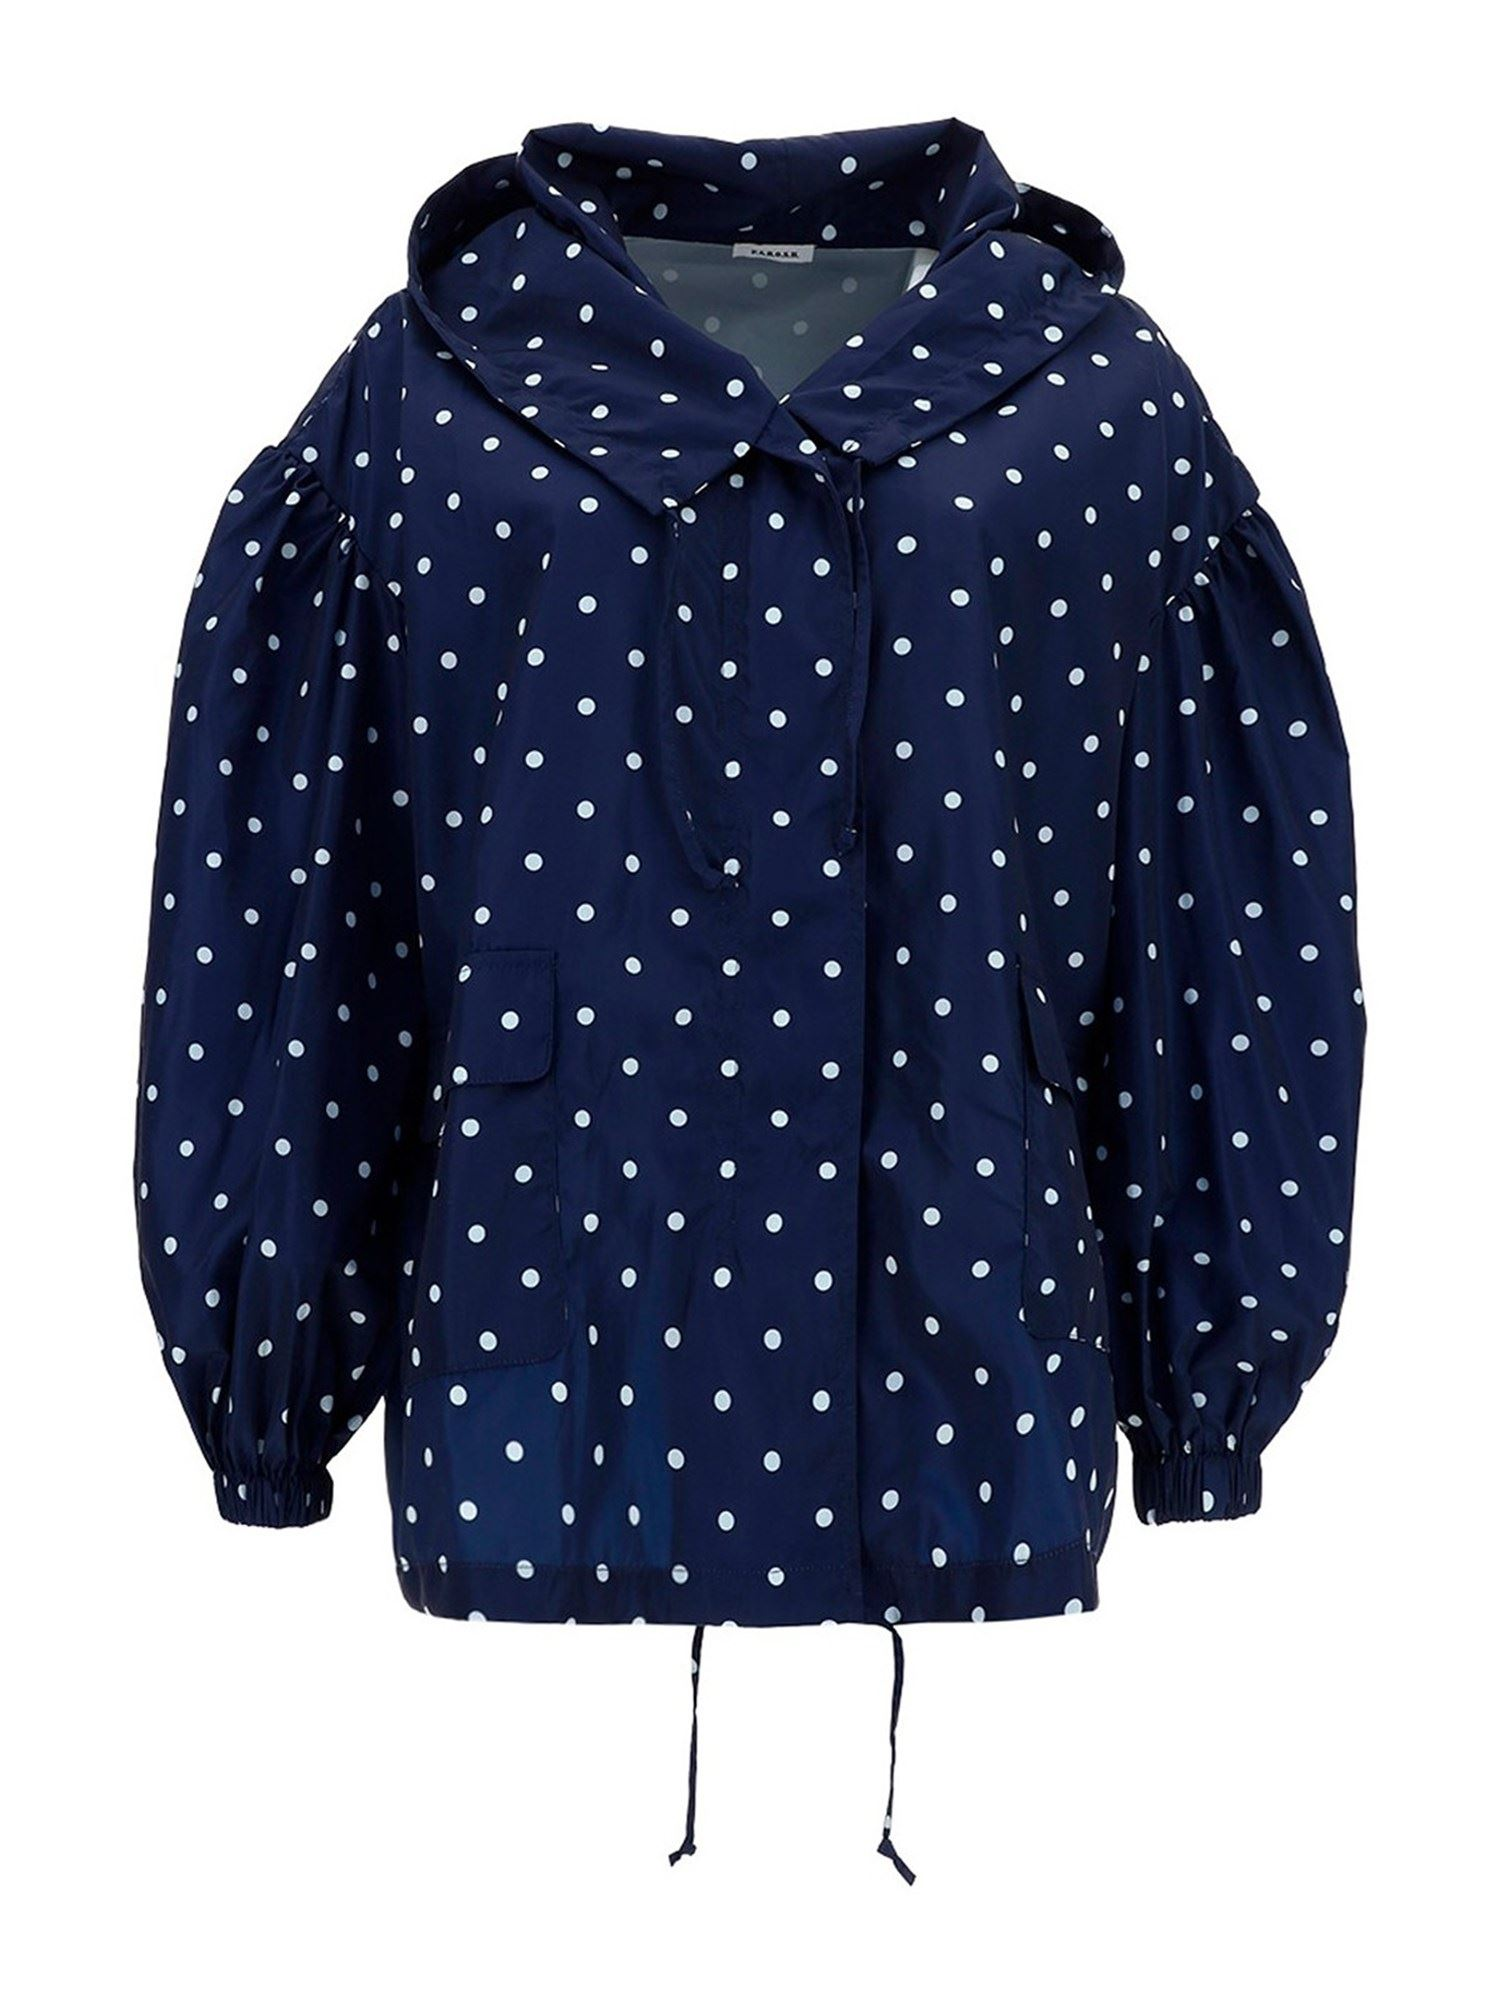 P.a.r.o.s.h. POLKA DOT PATTERNED JACKET IN BLUE